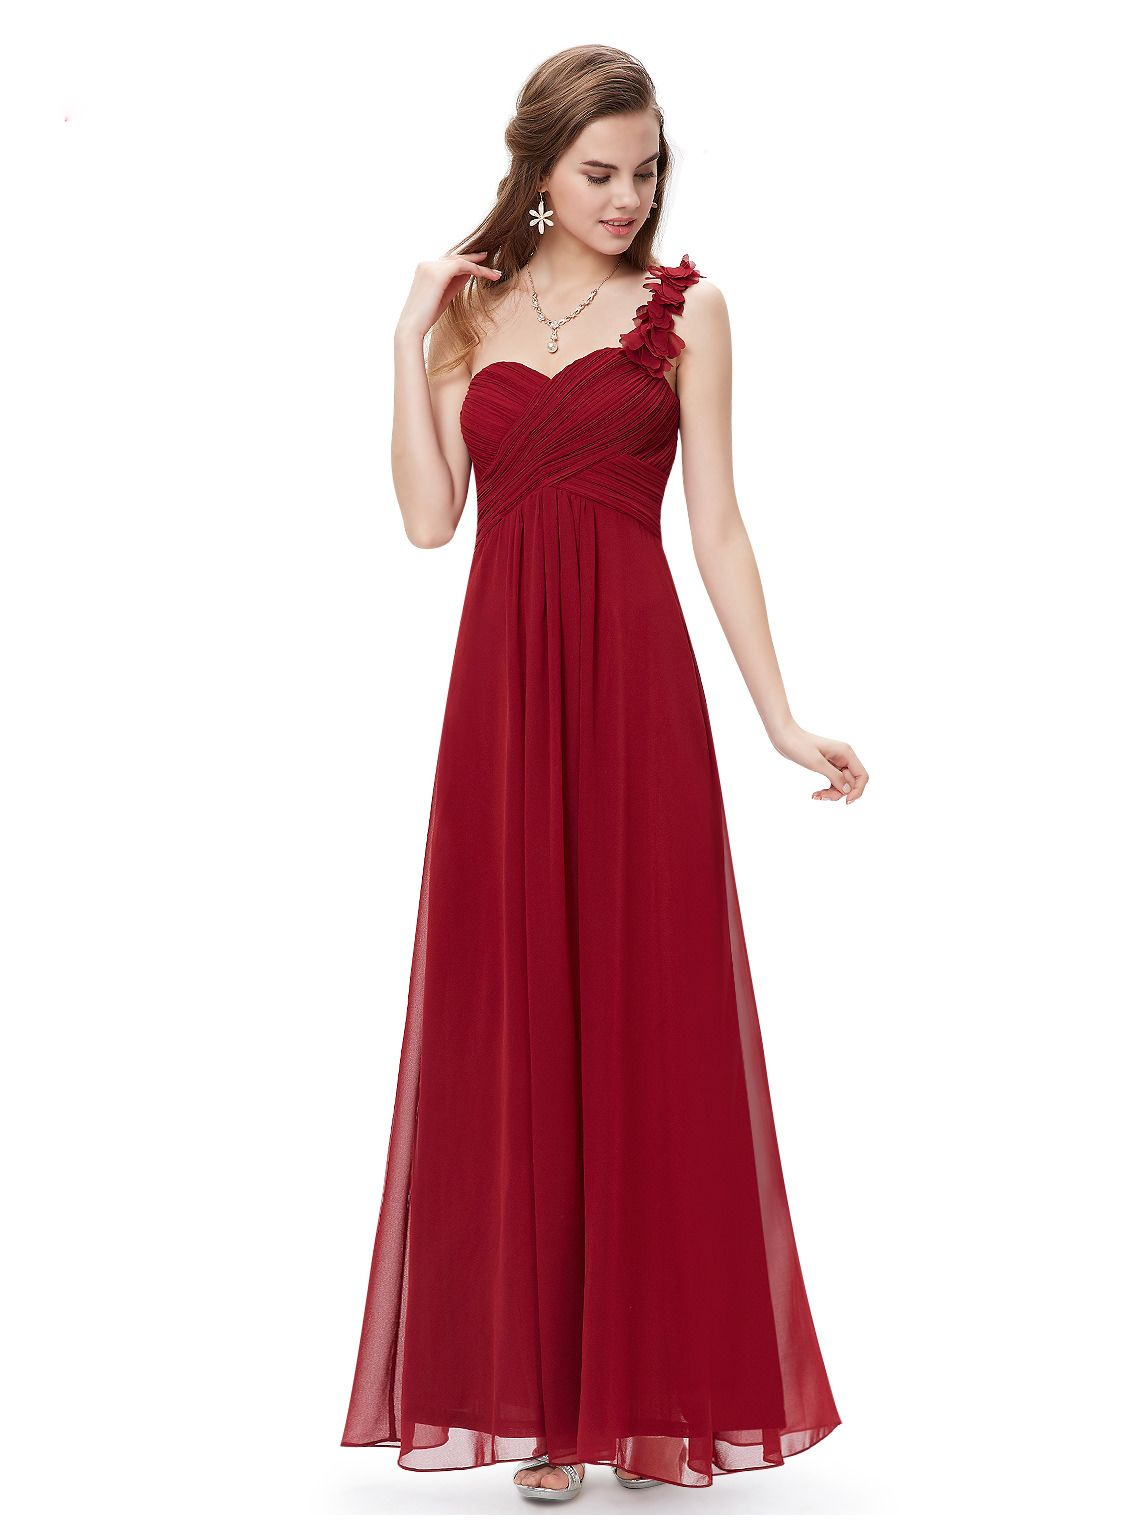 Langes One-Shoulder Abendkleid Rot  Abendkleid, Lange kleider